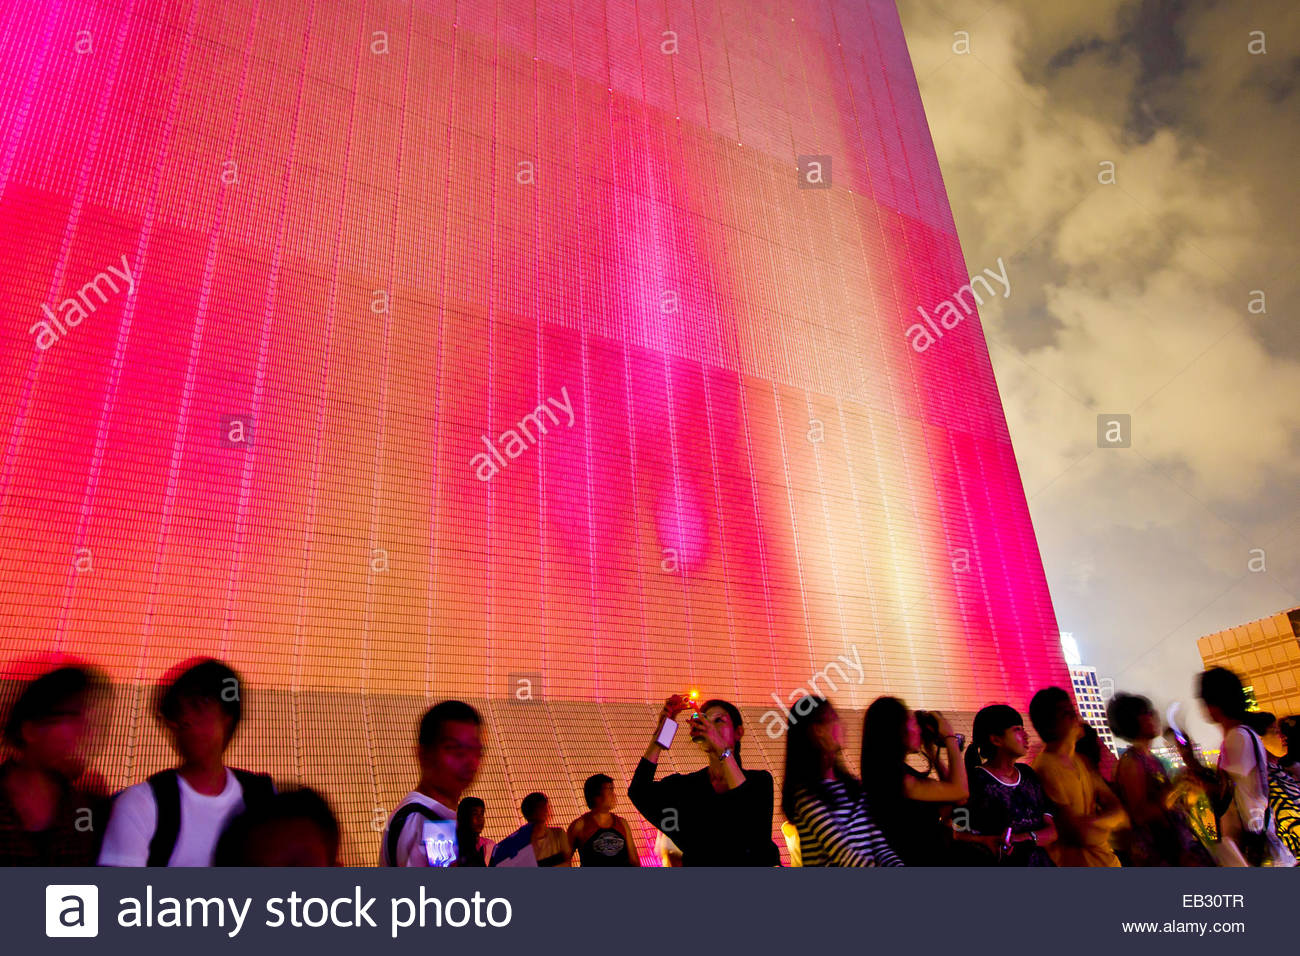 Colorful lights illuminate a building as people watch the Symphony of Lights laser and light show over the city Stock Photo